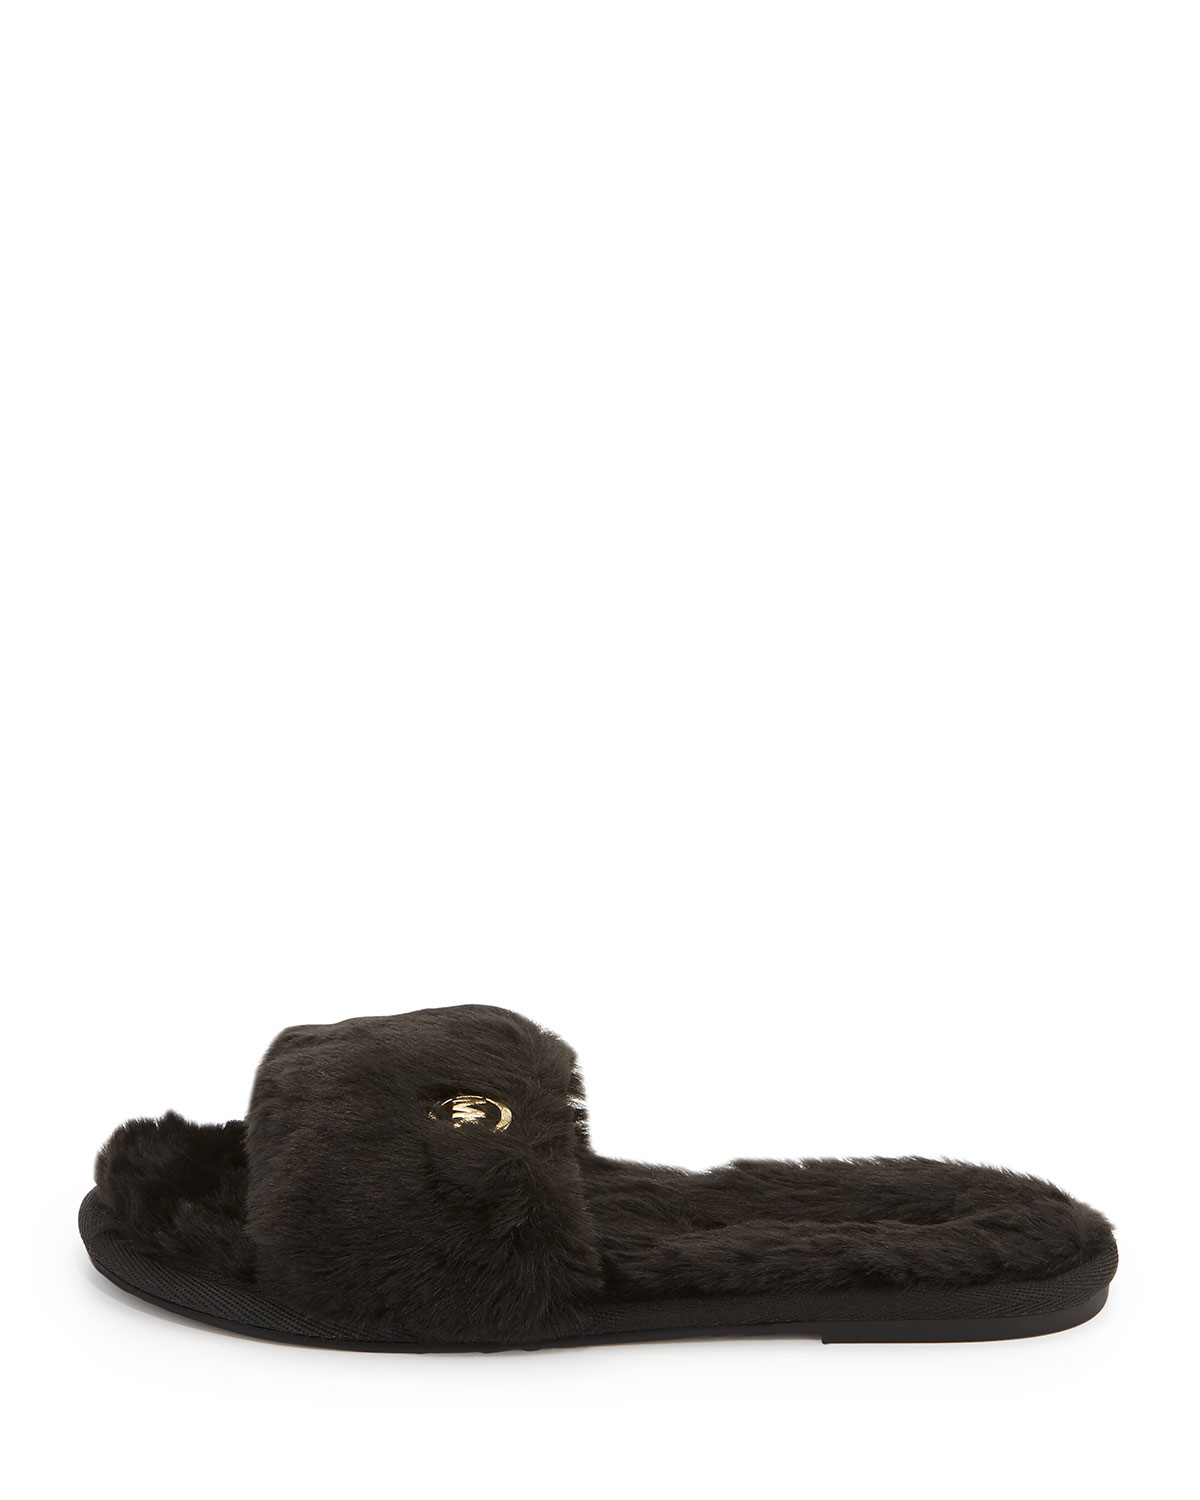 a52ccb048bdd Lyst - MICHAEL Michael Kors Jet Set Faux-fur Slide in Black